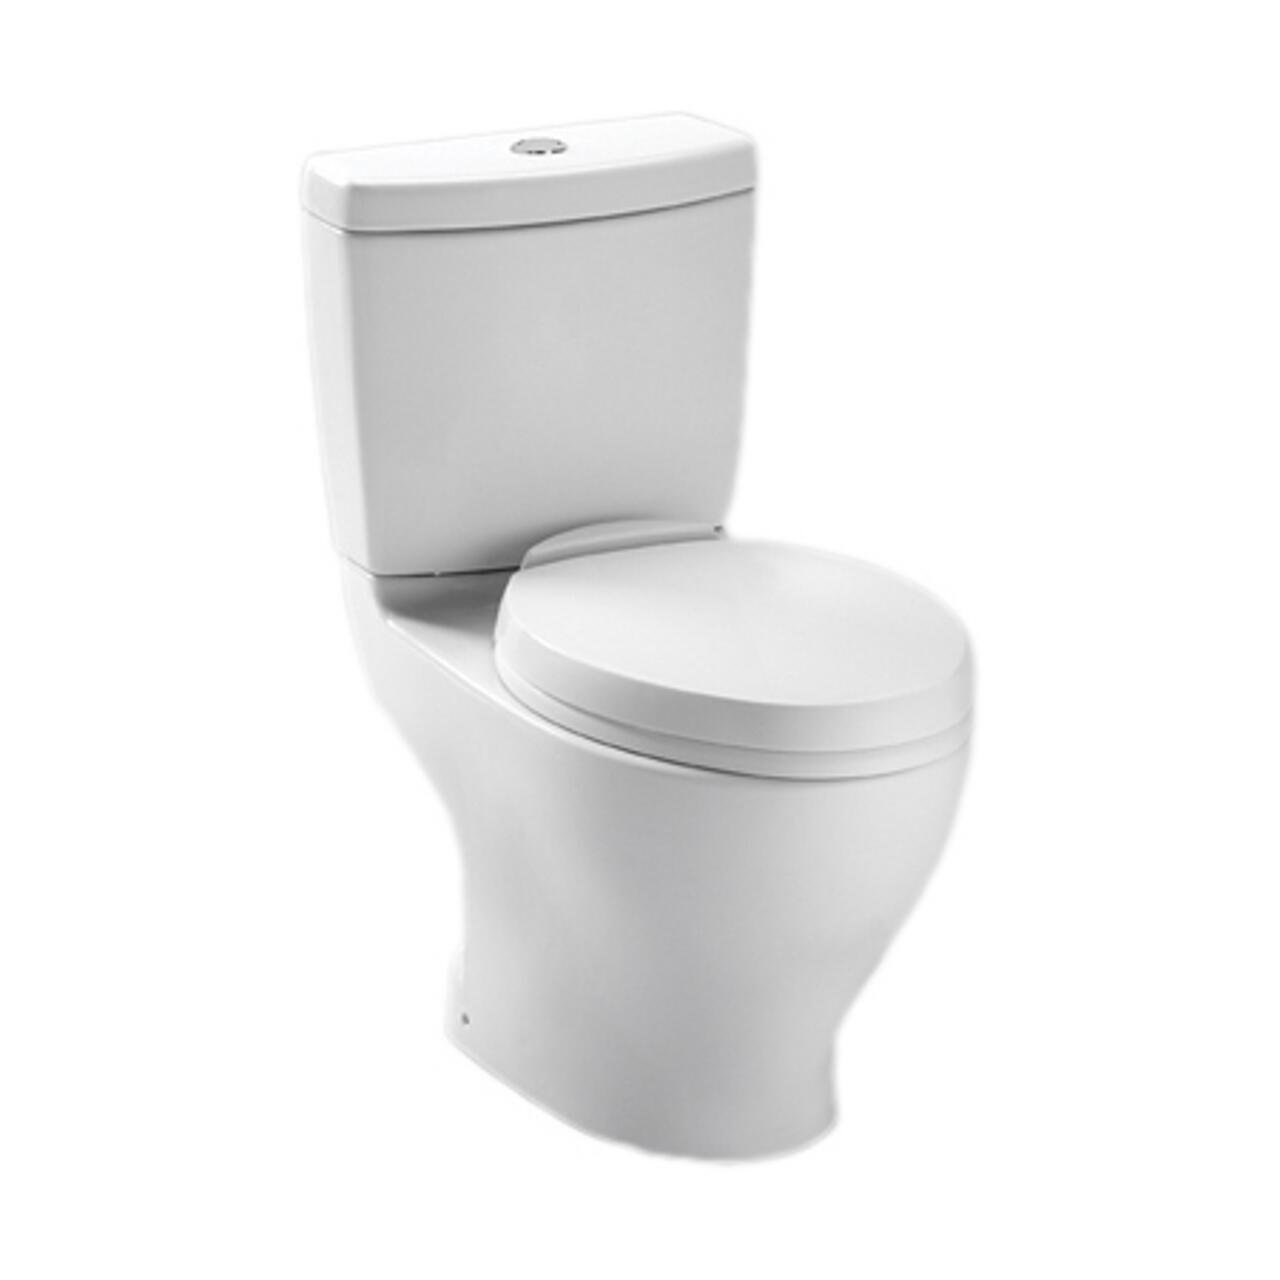 Toto CST412MF.10No.01 Aquia Dual Flush Toilet, 1.6-GPF and 0.9-GPF with 10-Inch Rough-In, Cotton